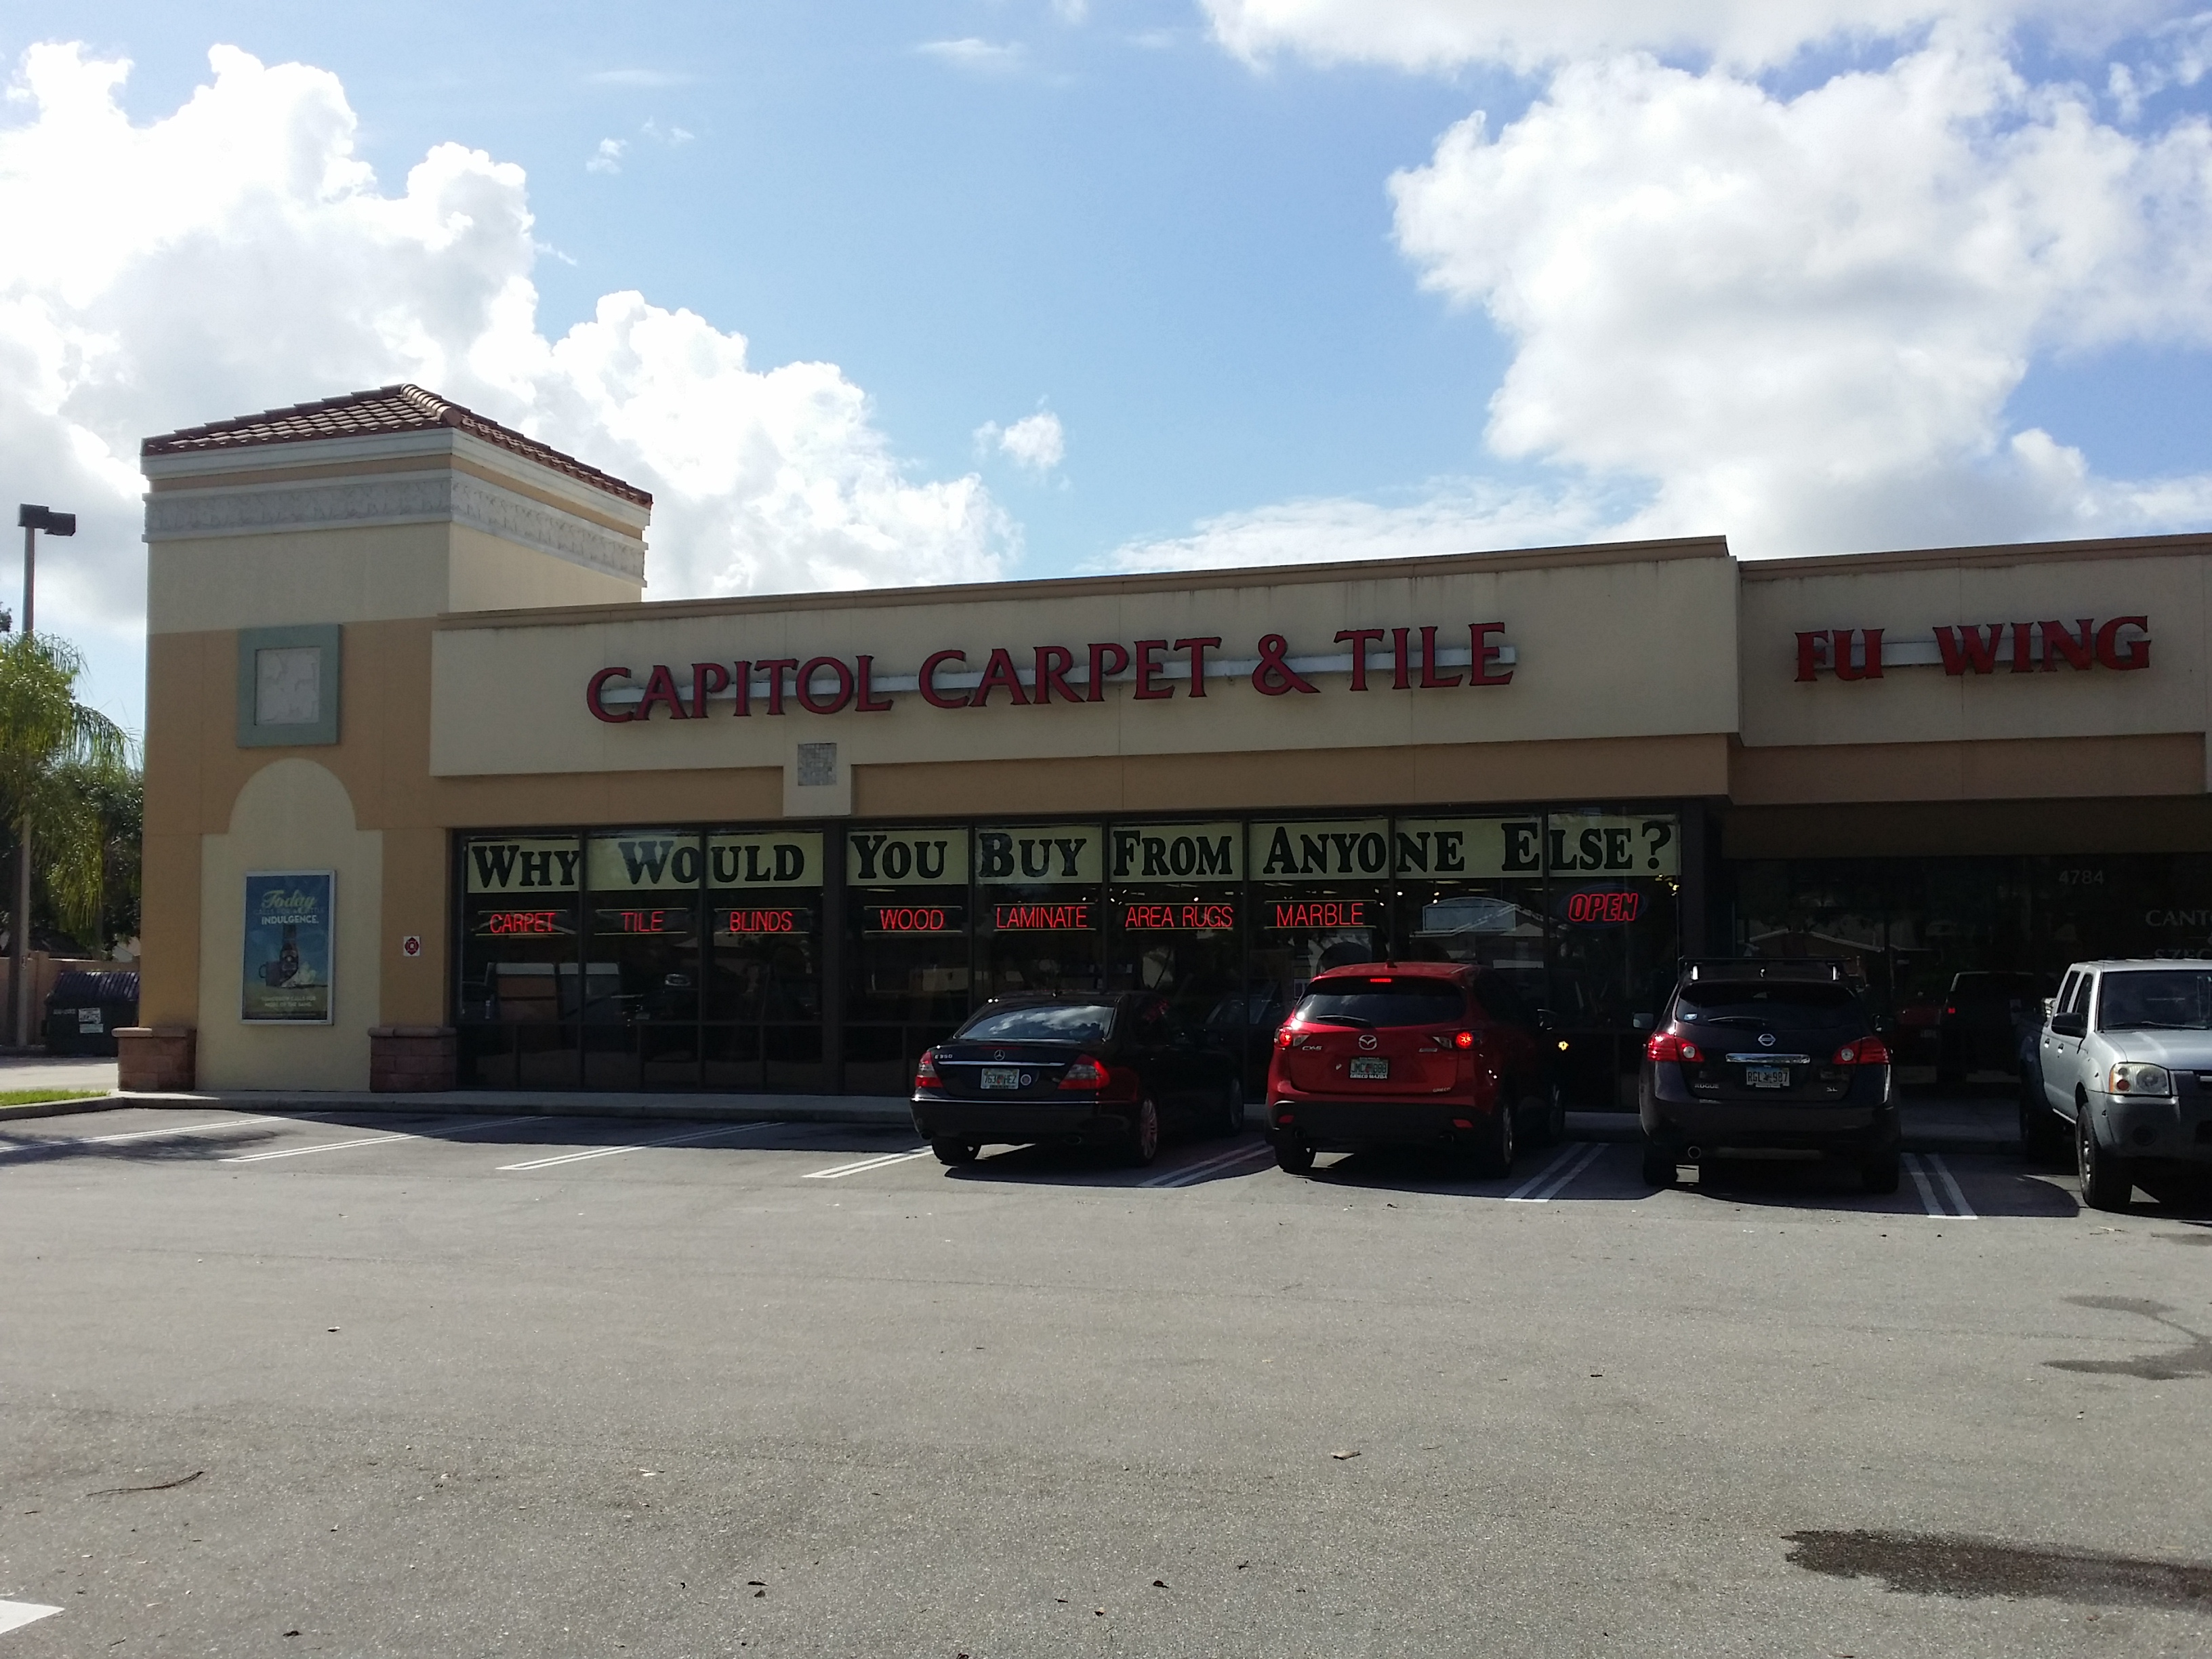 Capitol Carpet & Tile and Window Fashions - 4786 N Congress Ave Boynton Beach, FL 33426